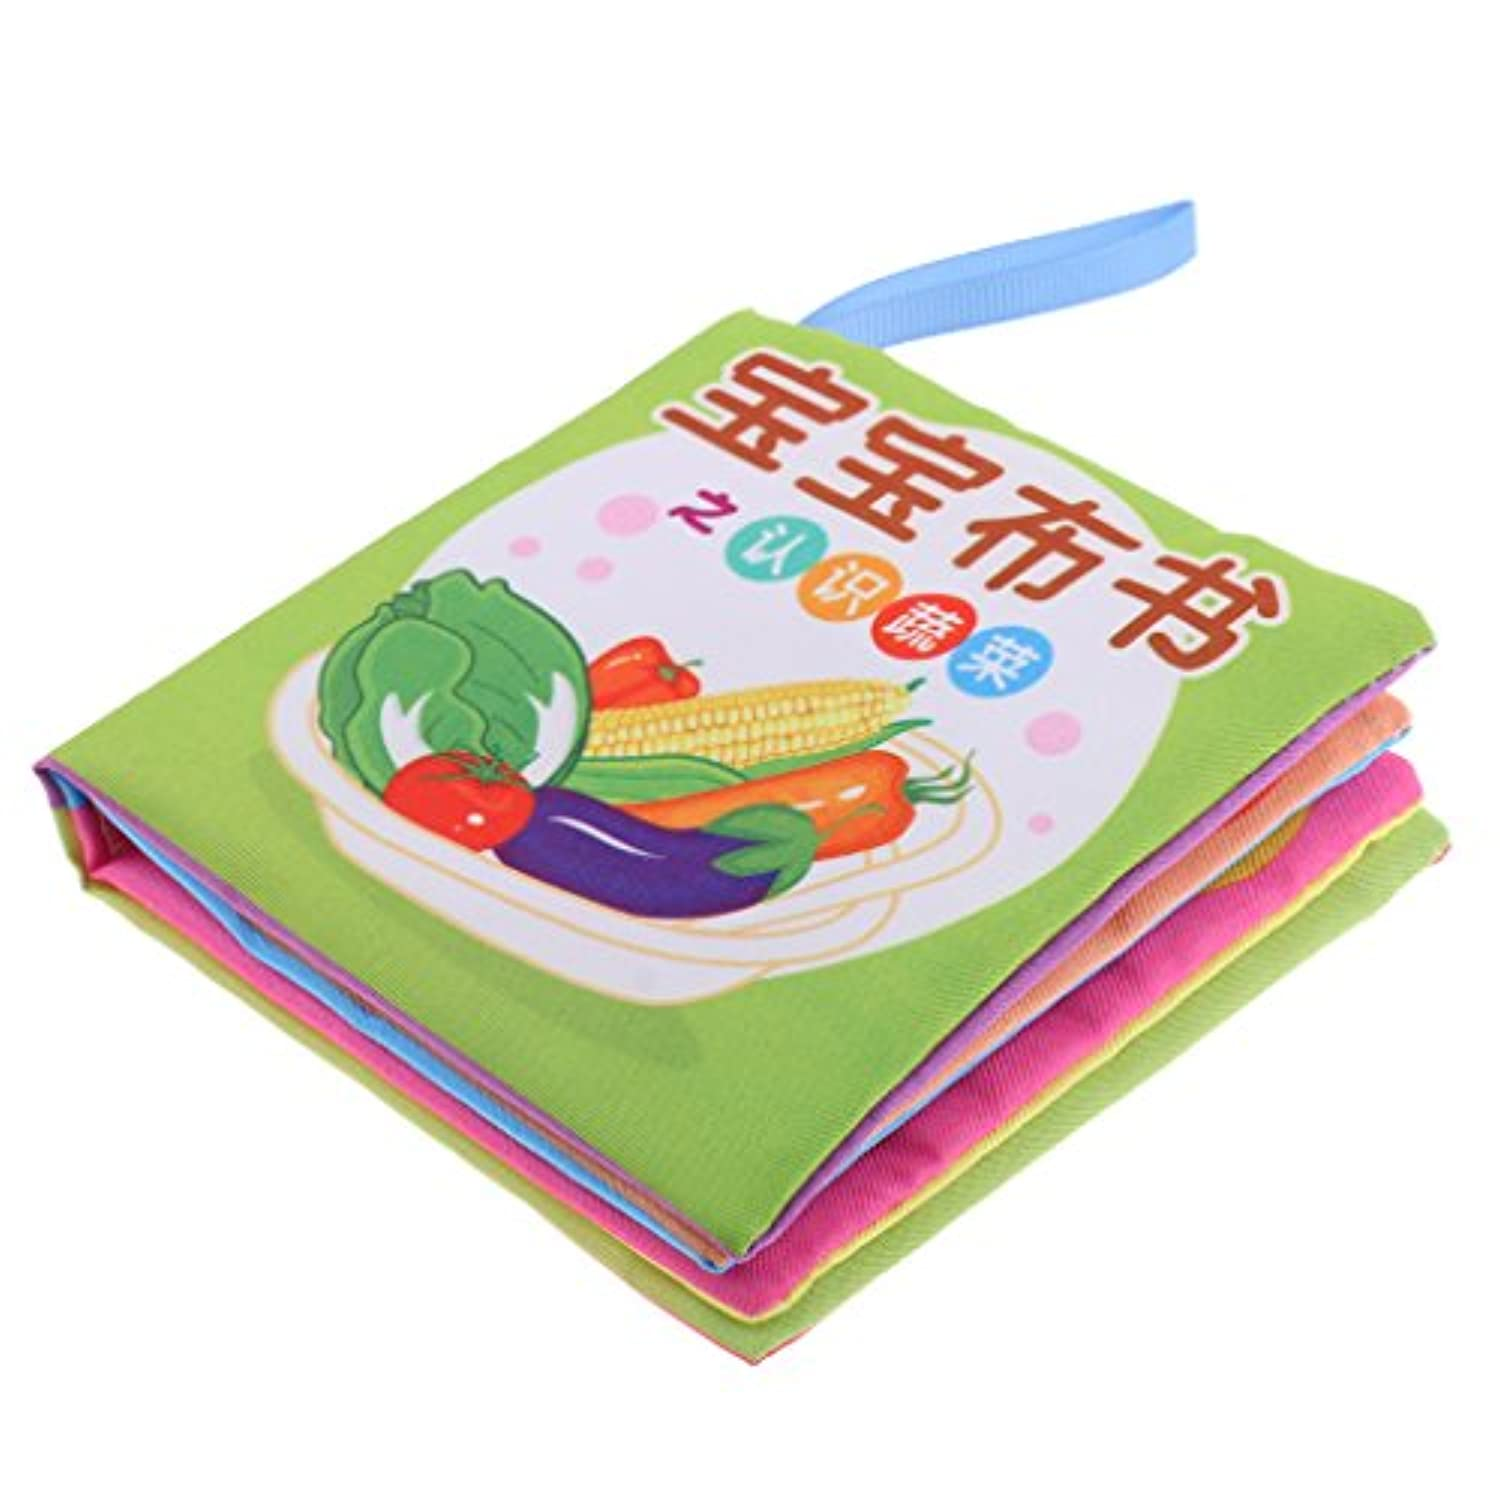 MonkeyJack 8 Pages Soft Cloth Cognize Durable Book Chinese English Colours Shapes Educational Toys for Baby Kids Development Vegetables